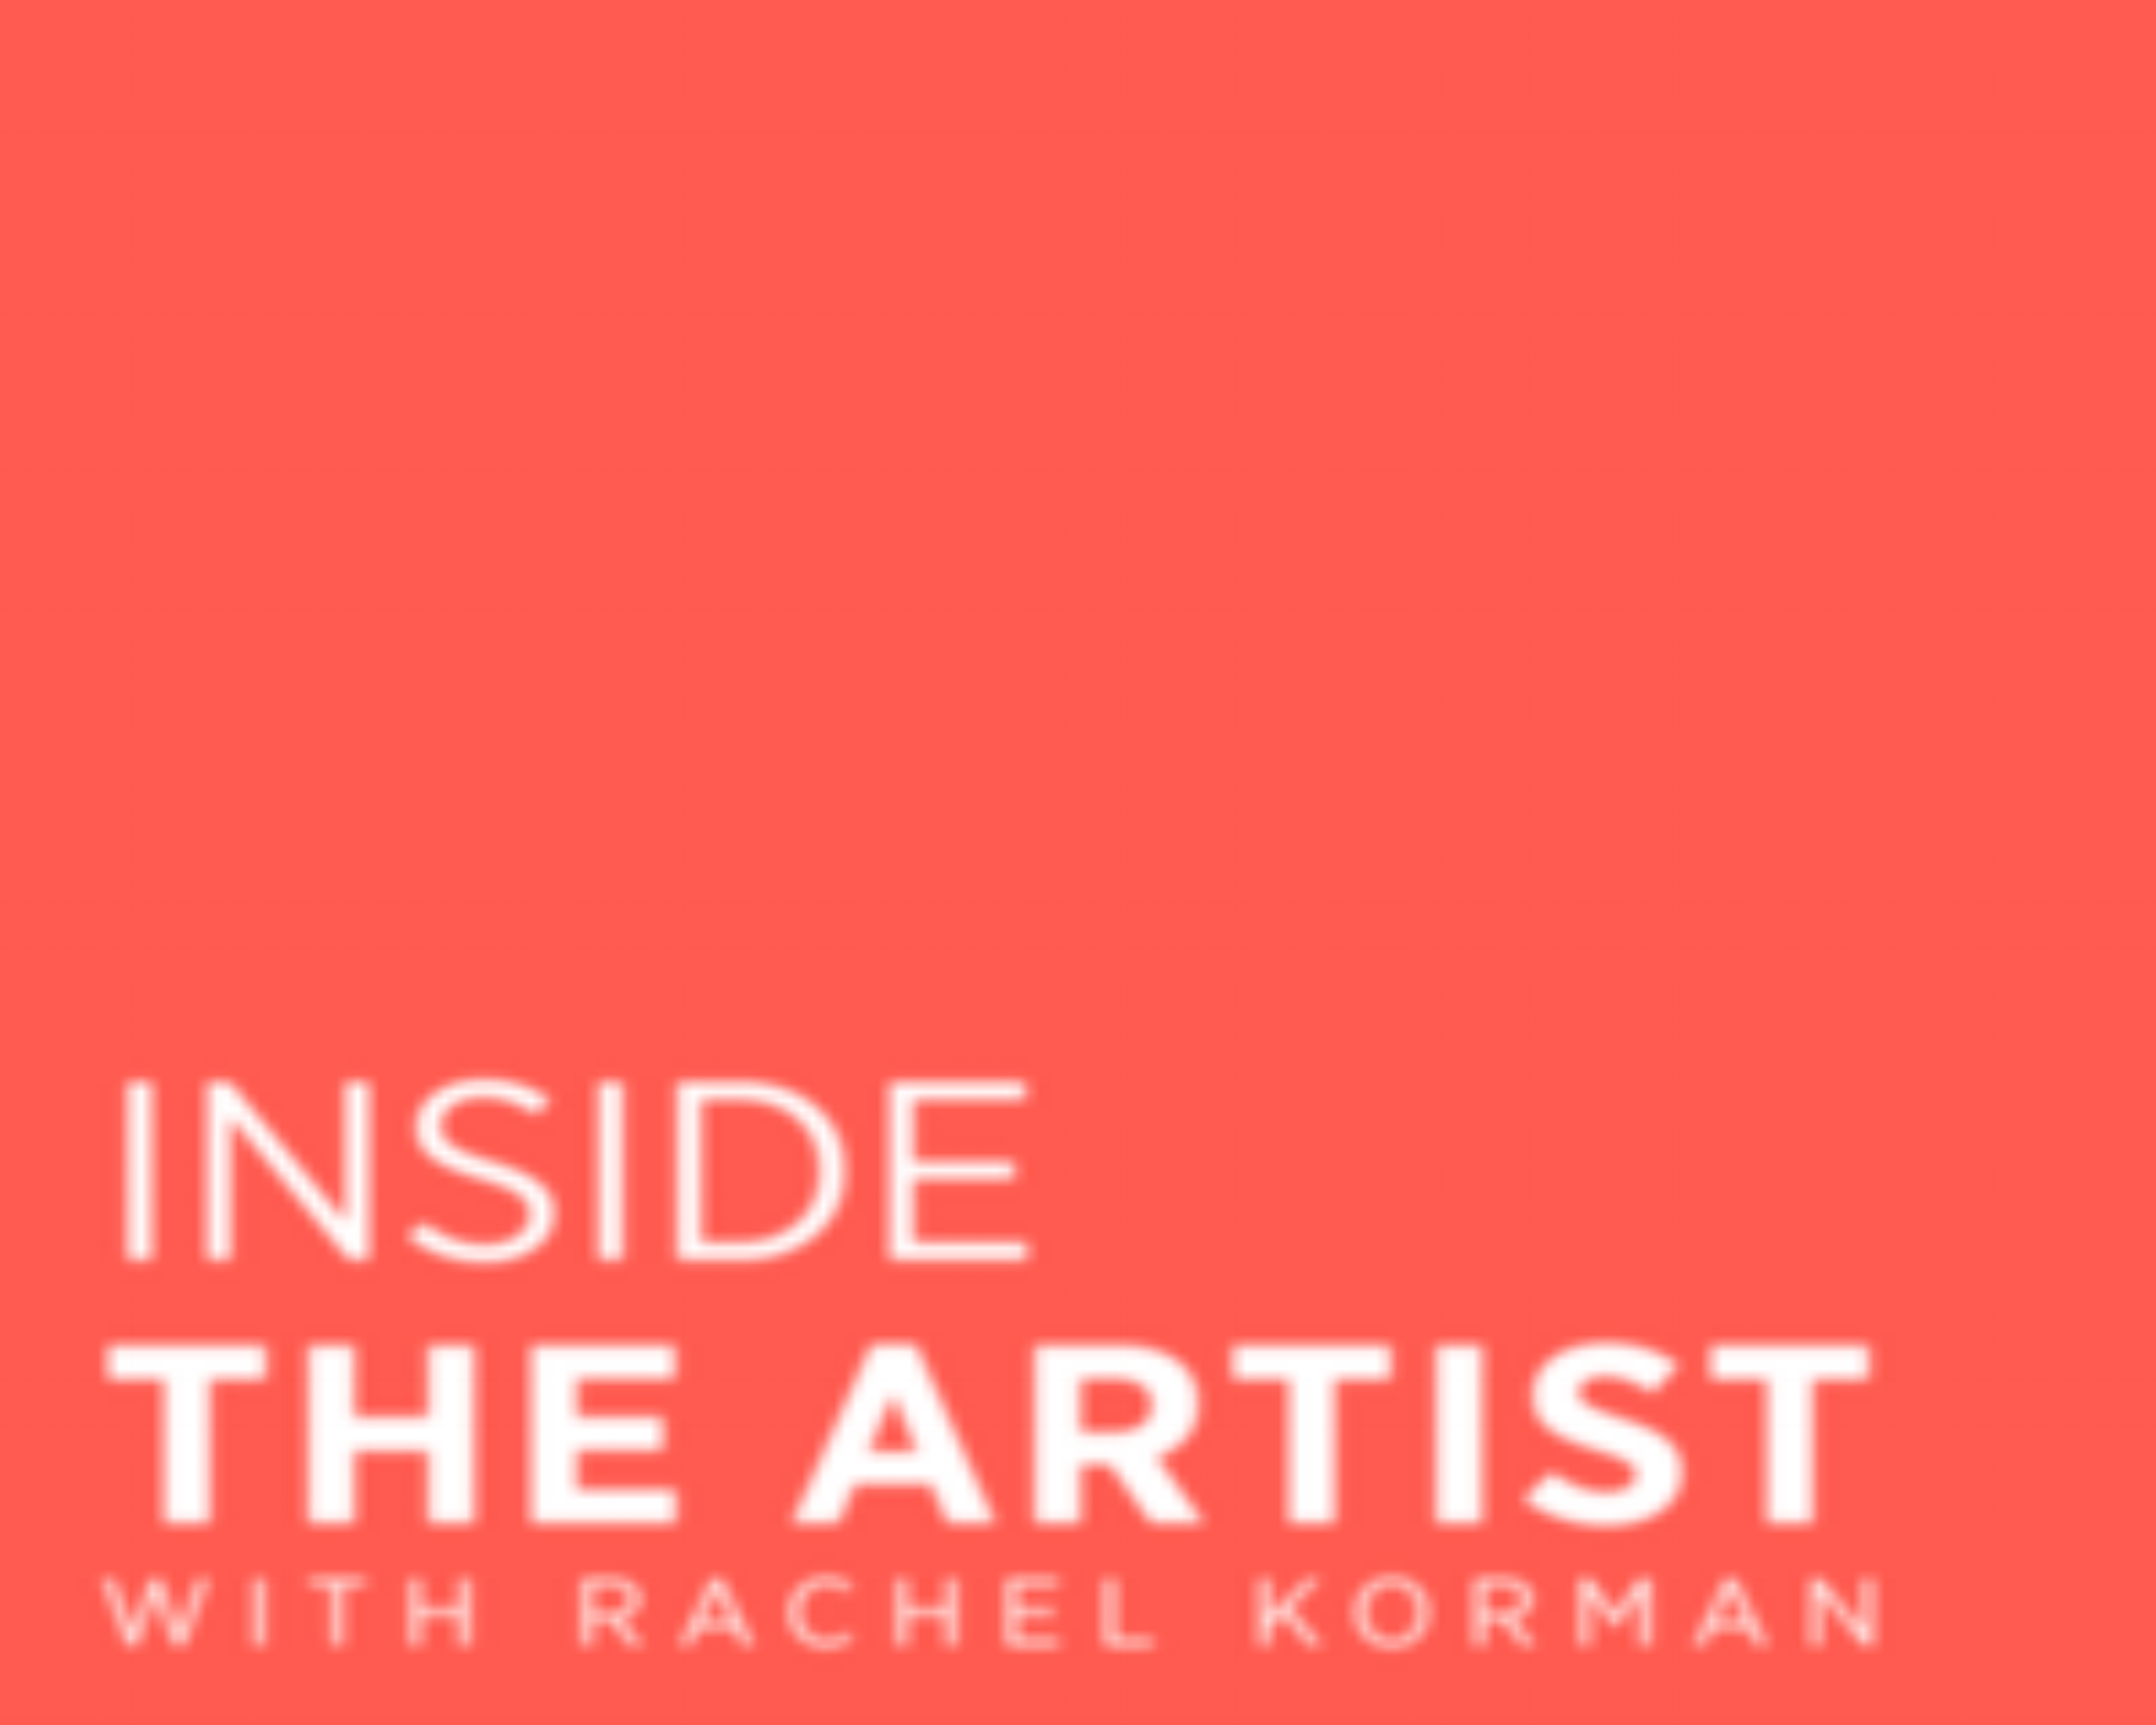 inside the artist with rachel korman